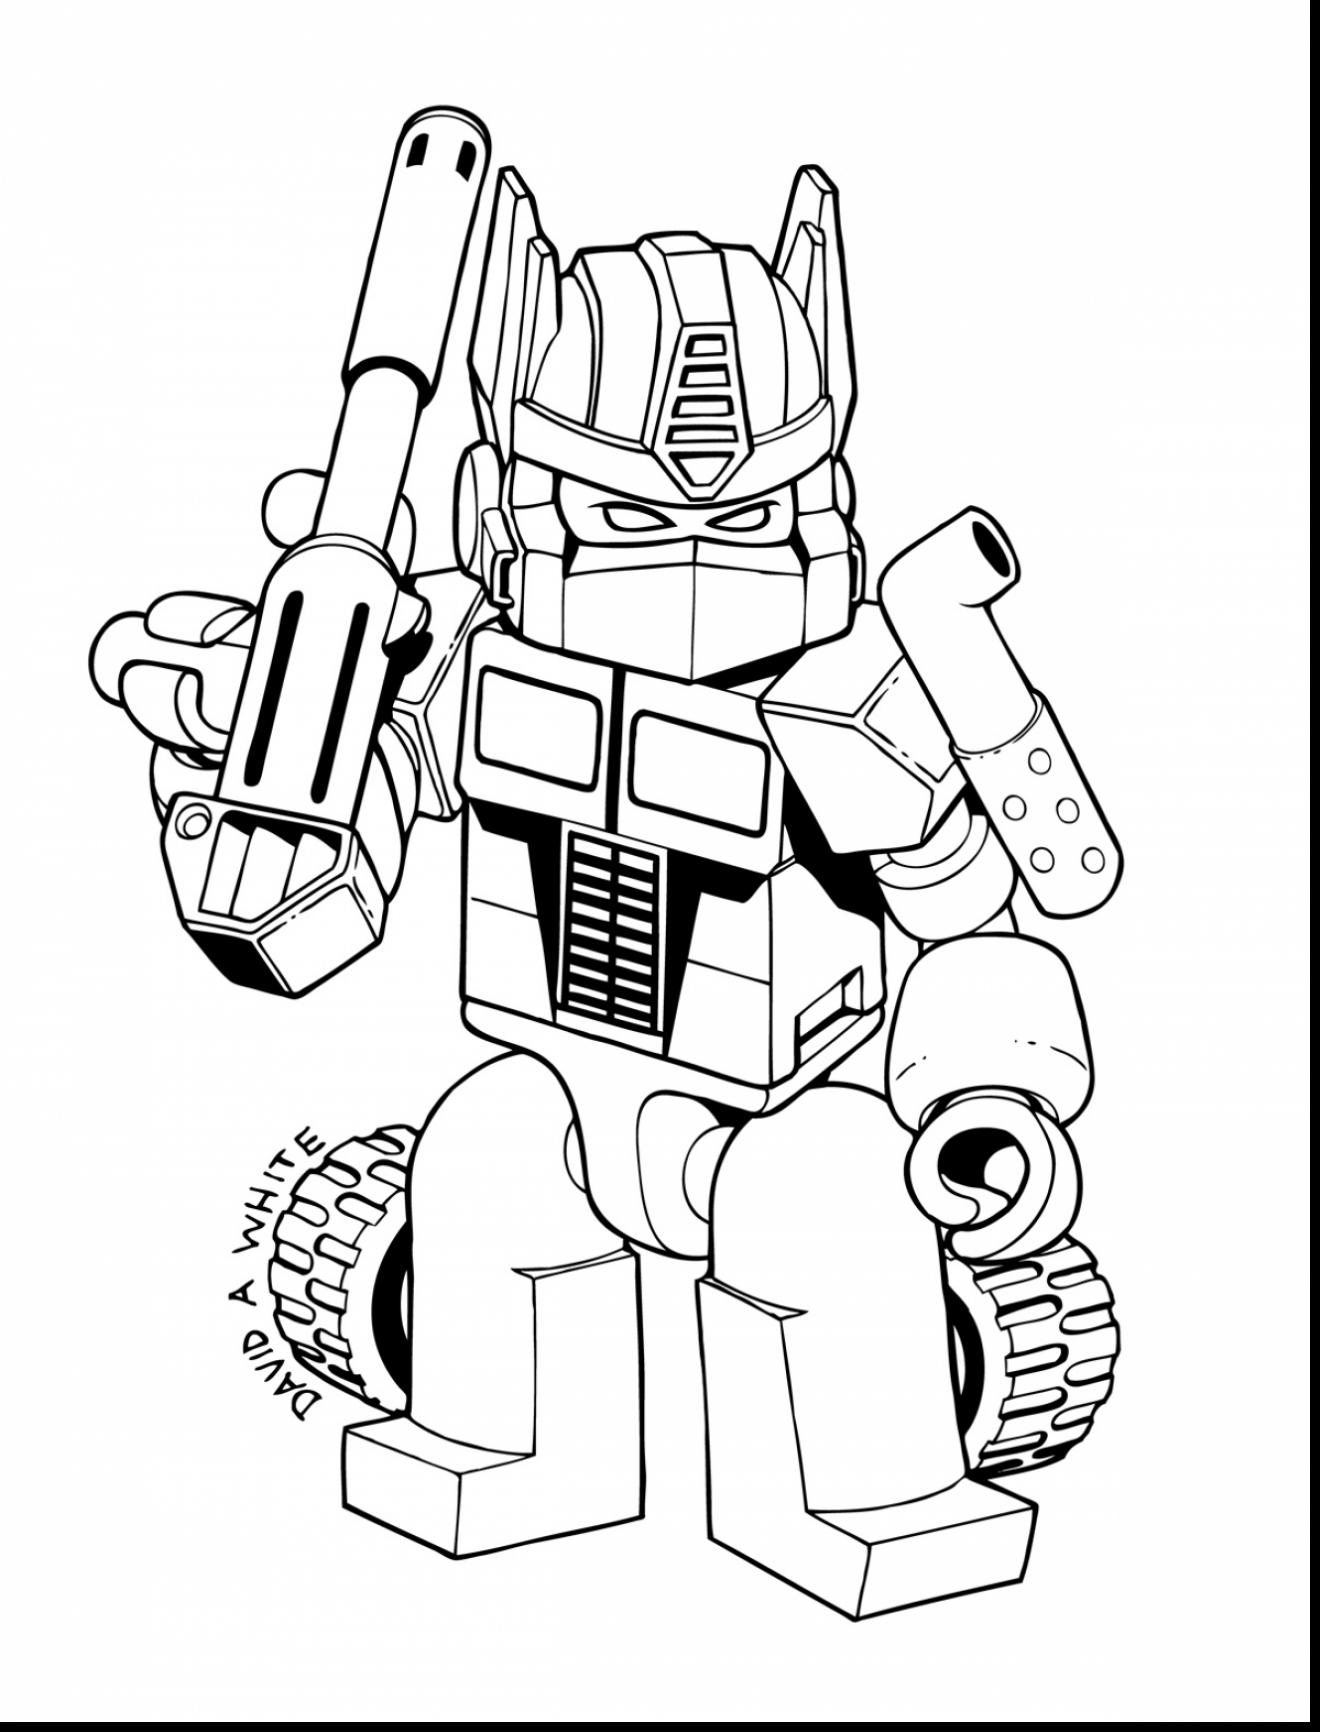 Bumblebee drawing transformers at free for Transformers animated coloring pages